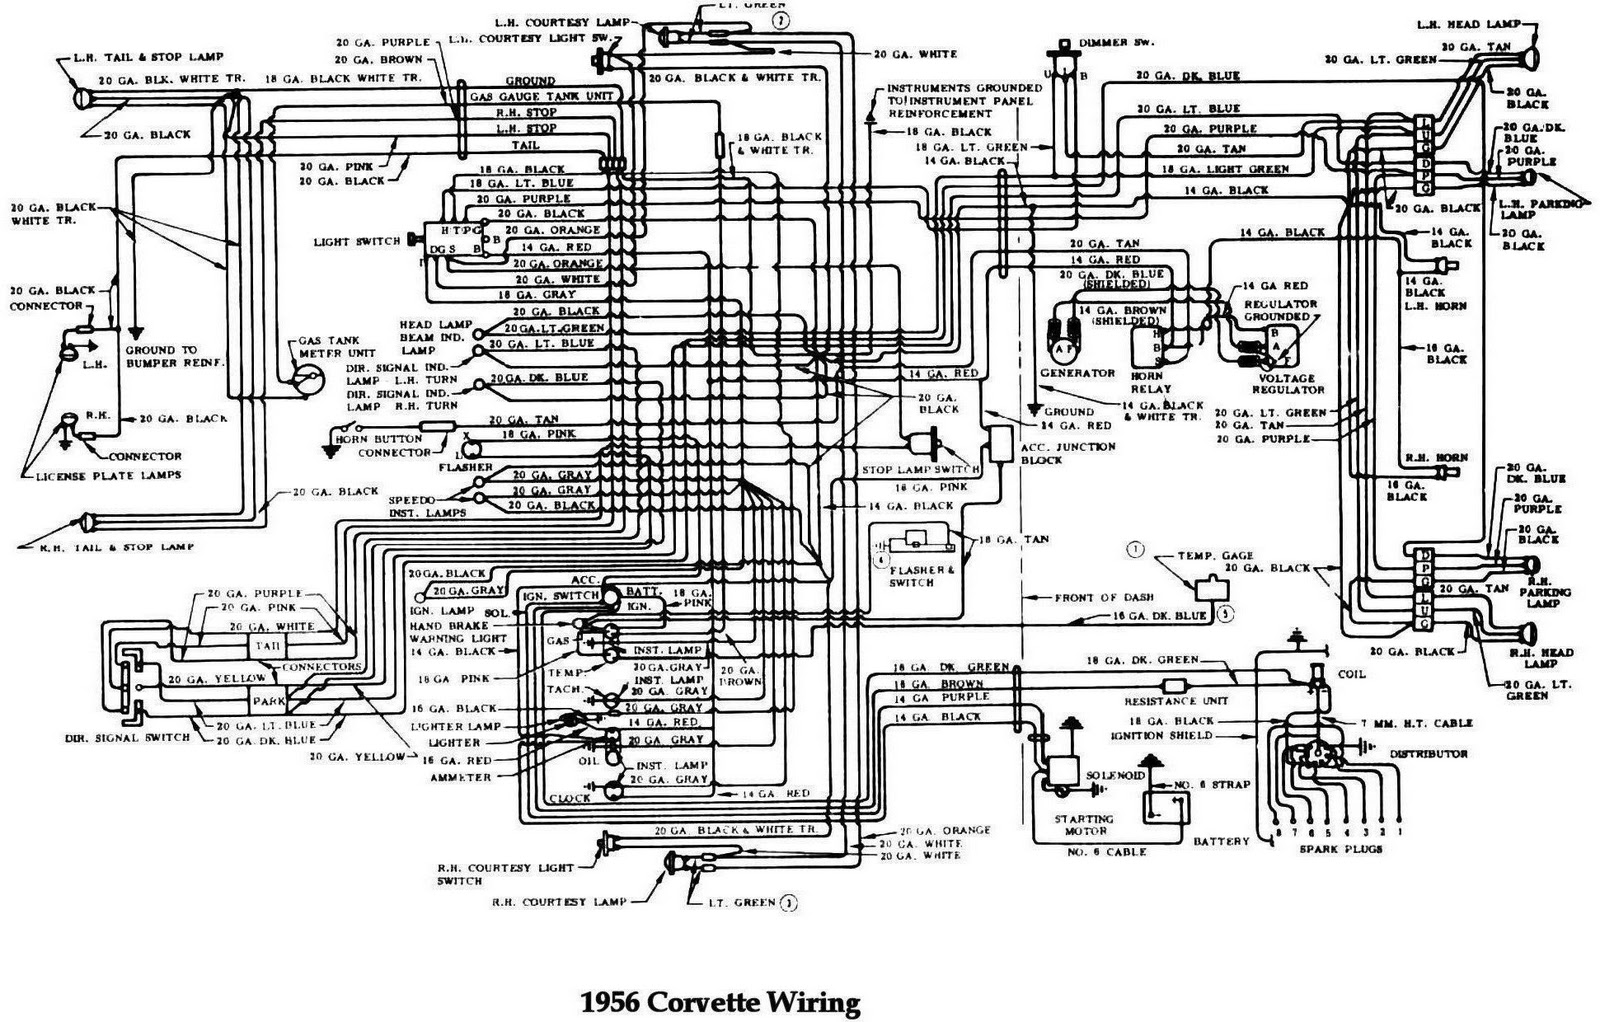 2002 Chevy S10 Wiring Diagram Likewise 2004 Chevy Cavalier On 2002